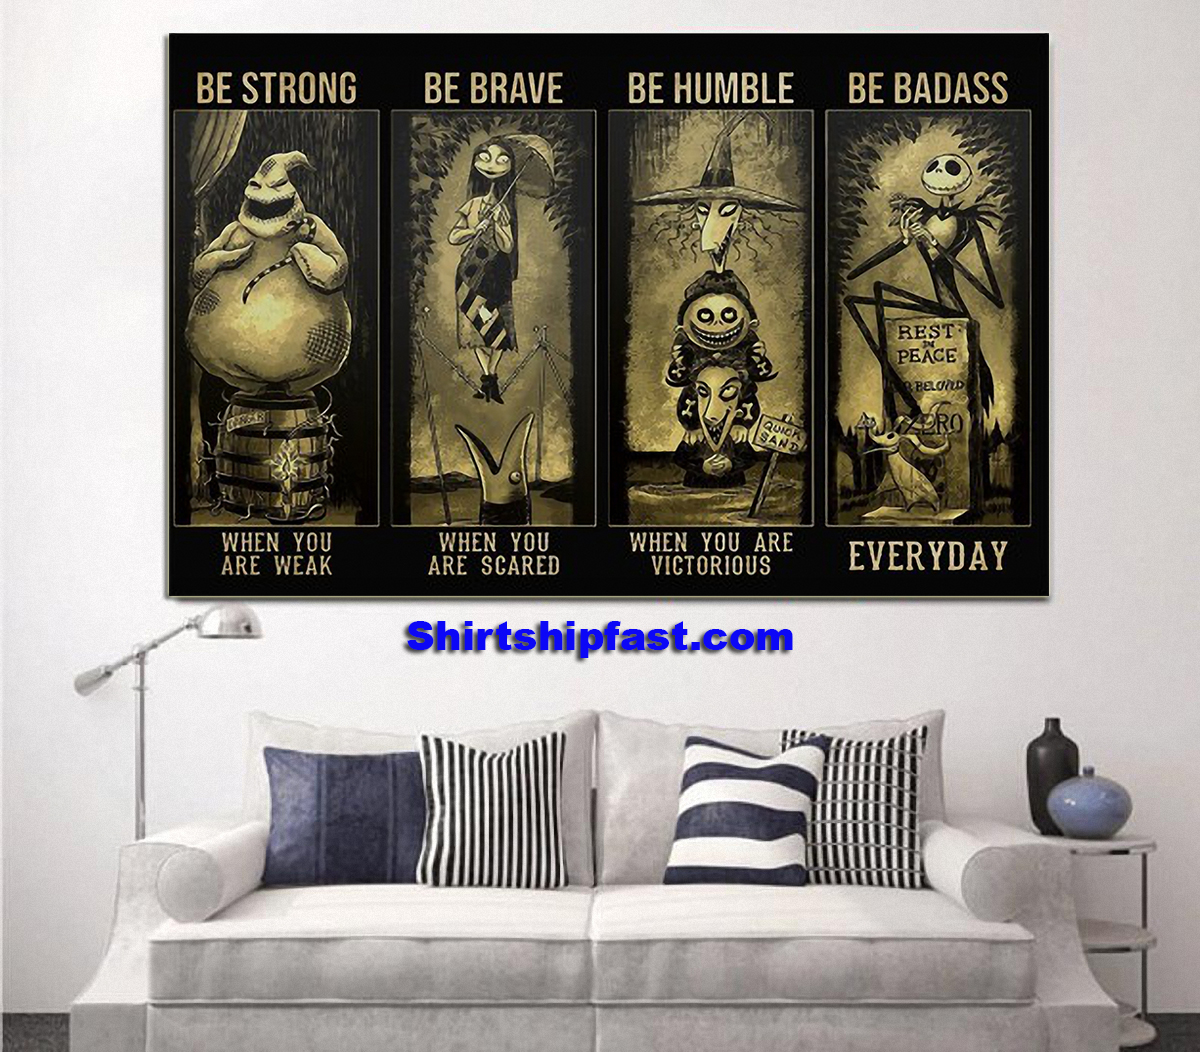 Nightmare before christmas be strong be brave be humble be badass poster - Picture 2